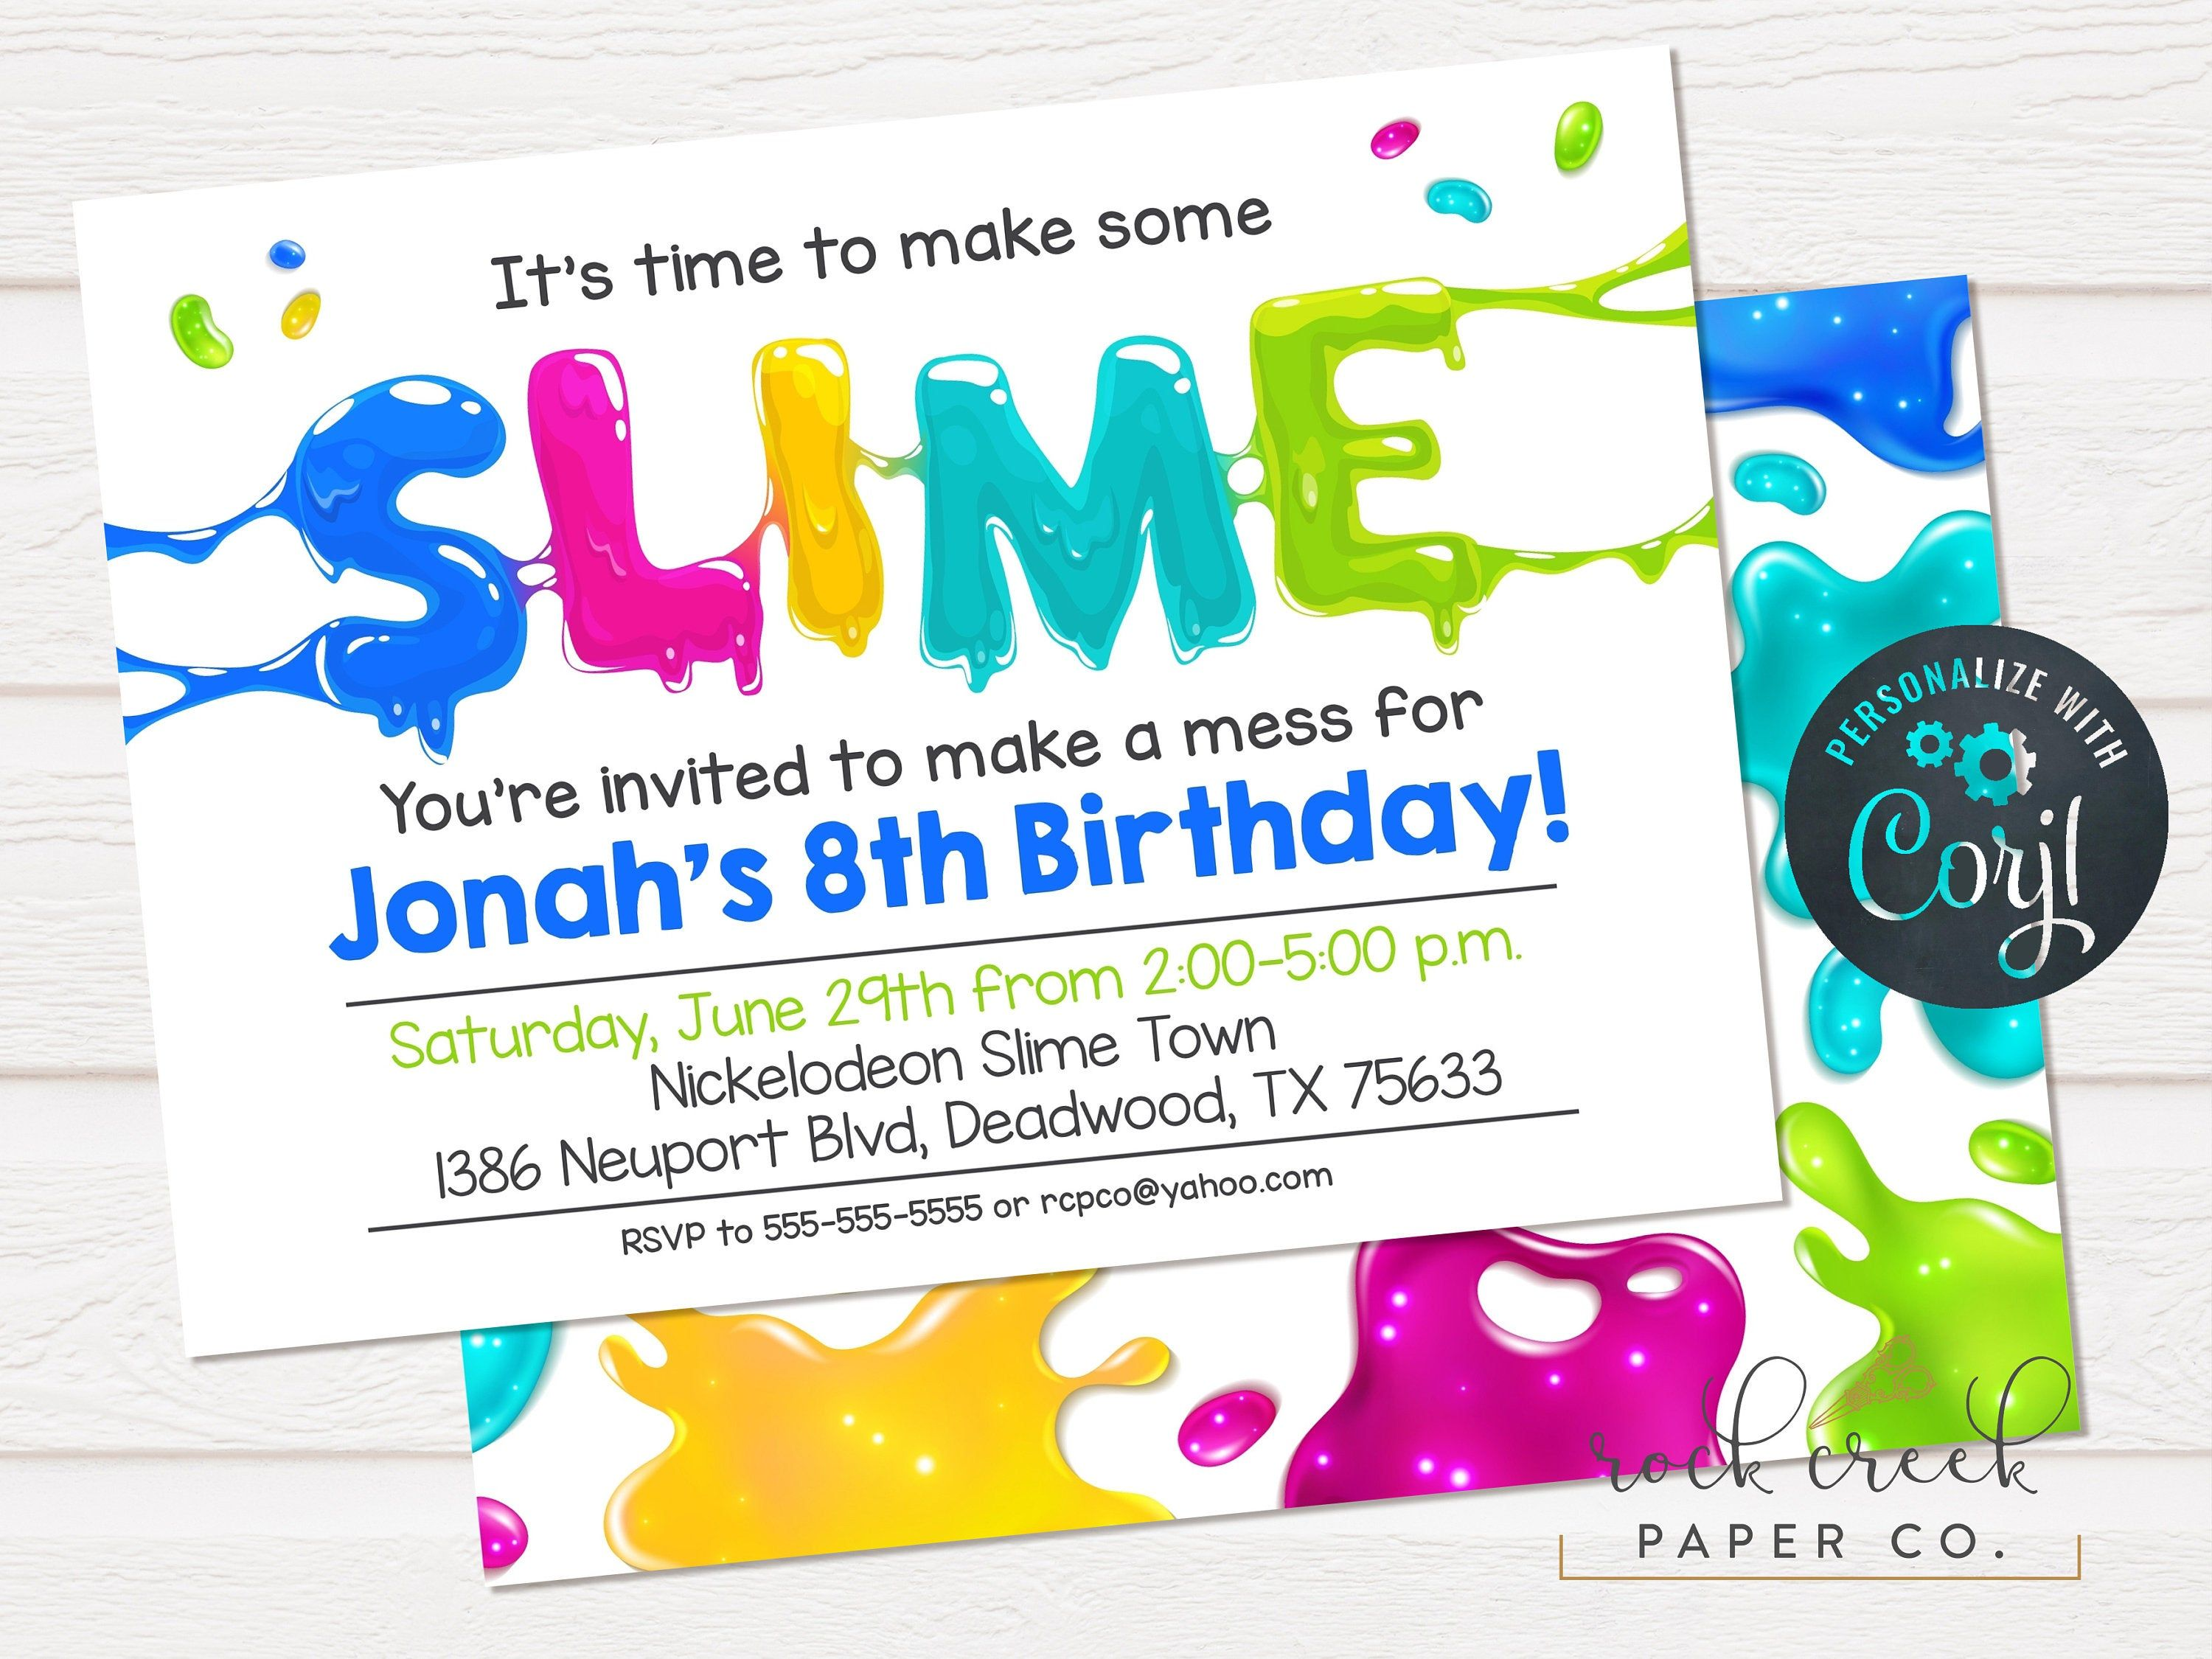 Slime birthday invitation slime making party slime party